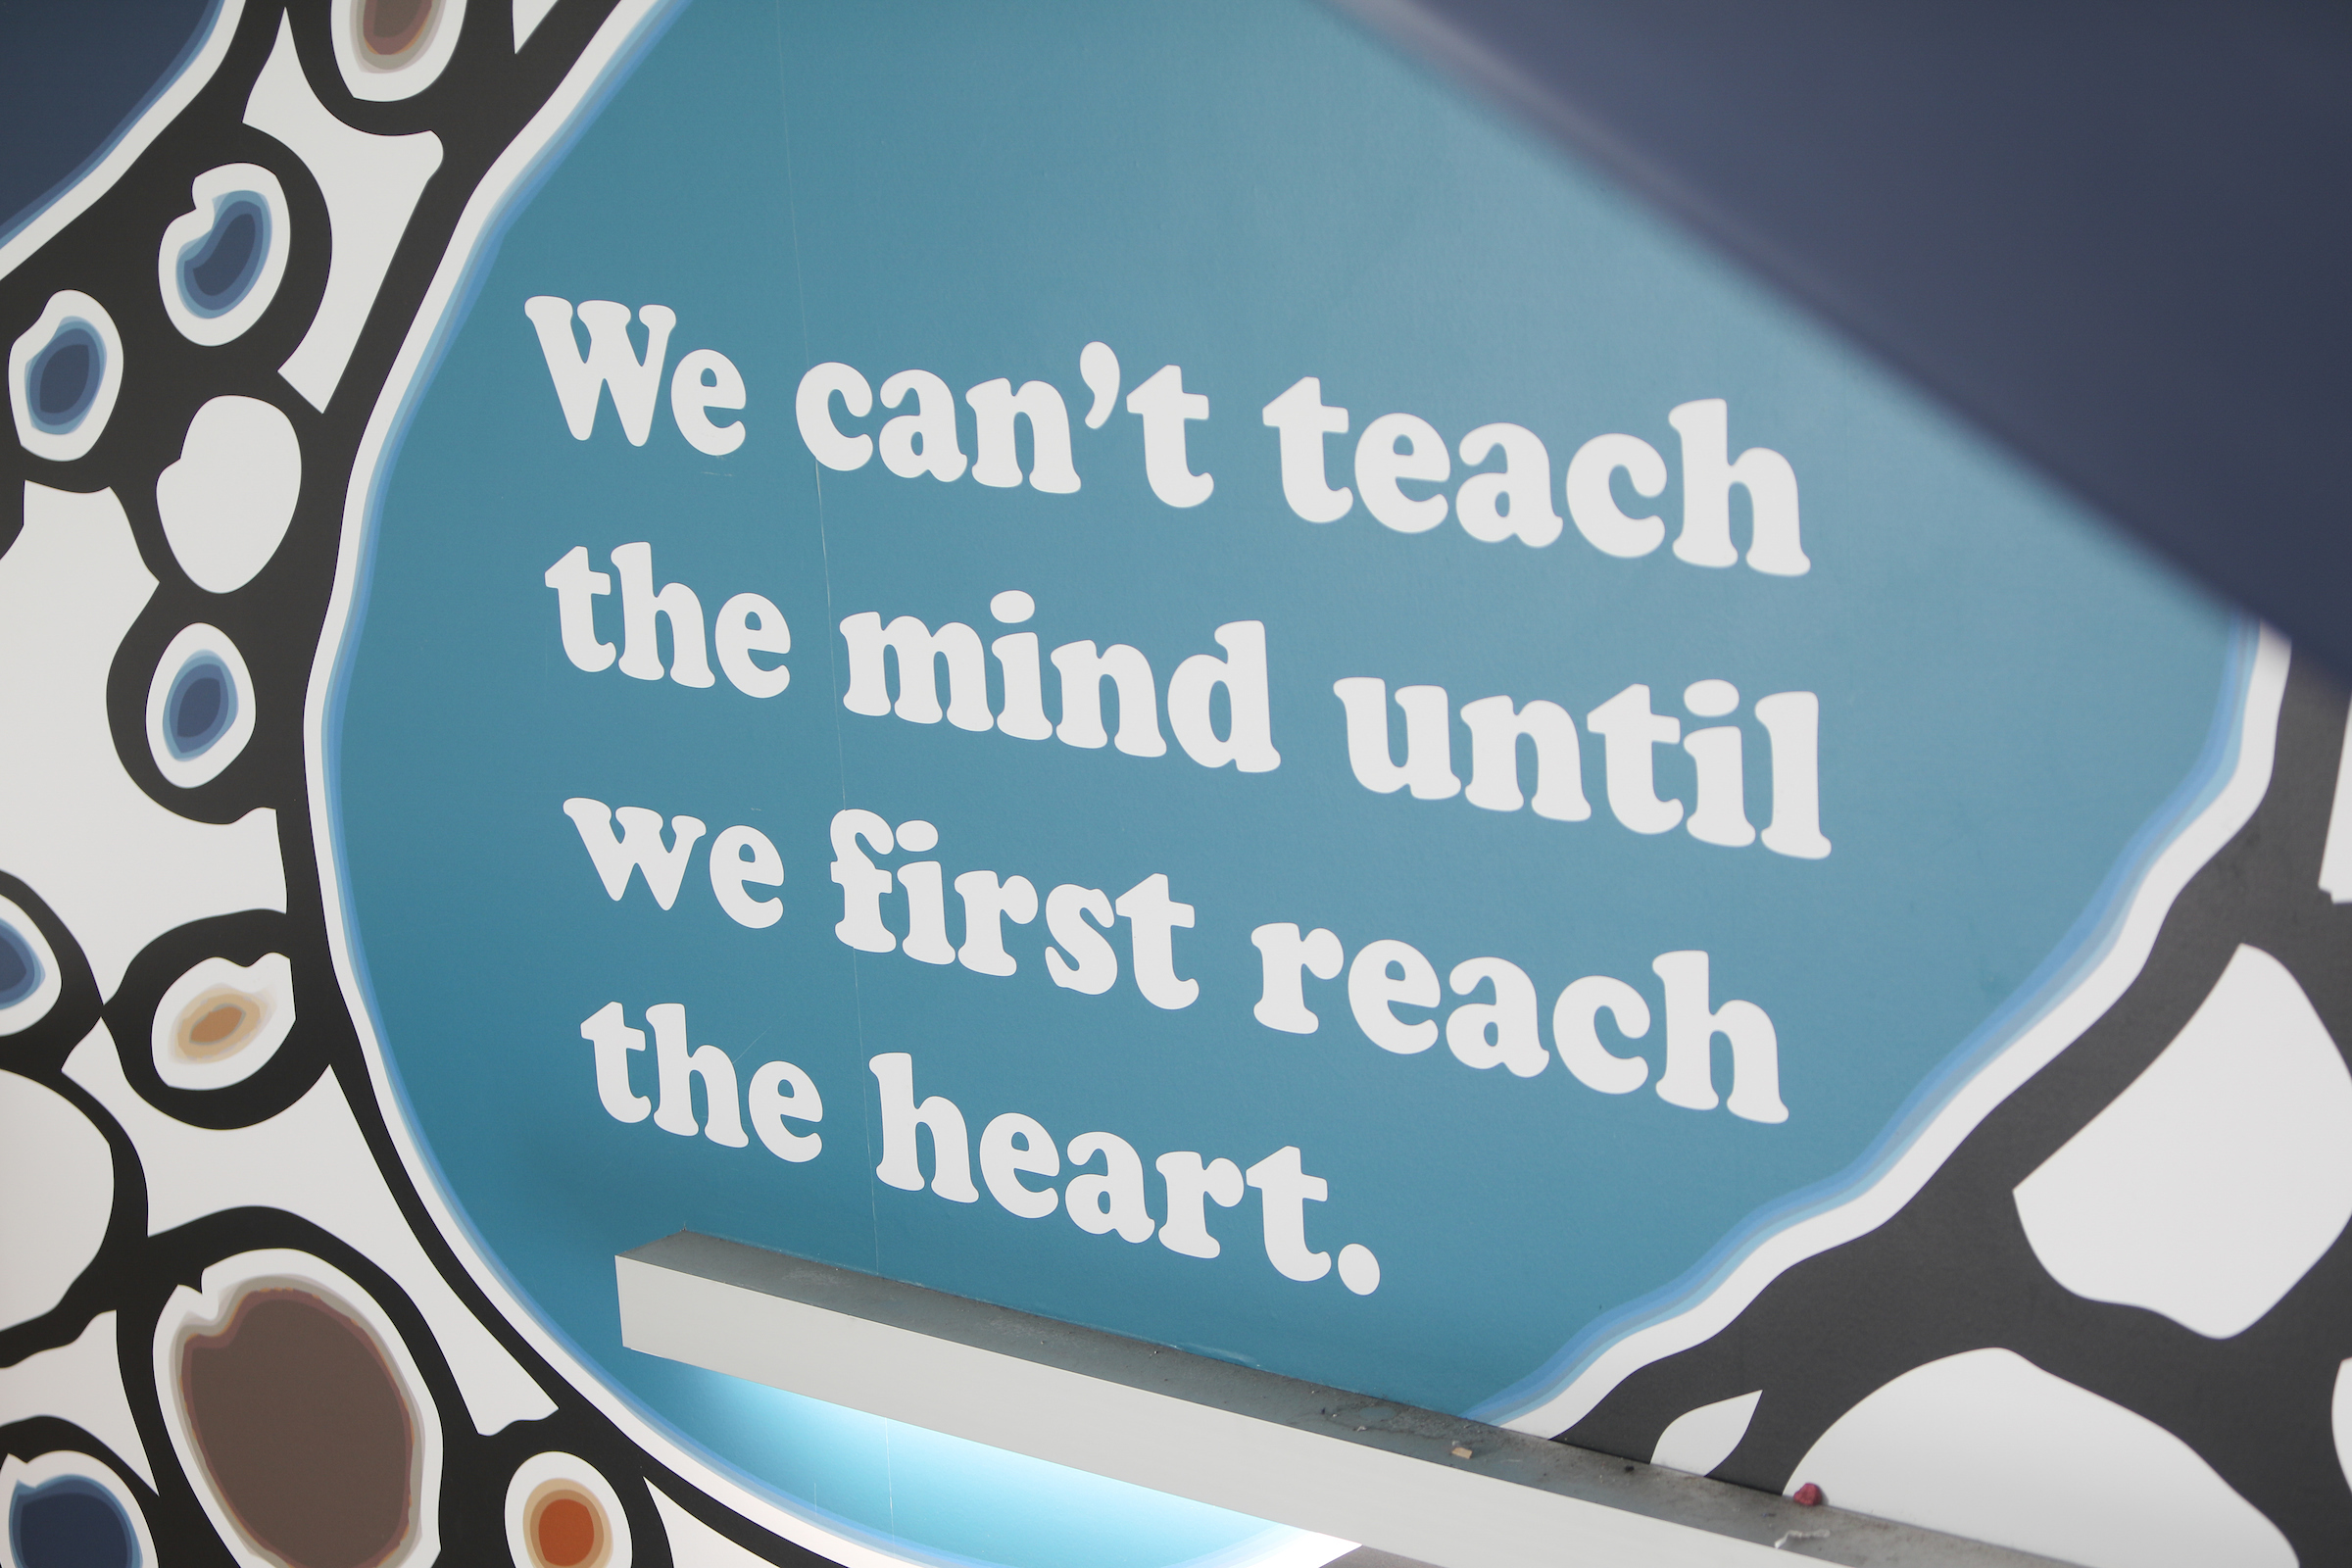 We can't teach the mind until we first reach the heart.